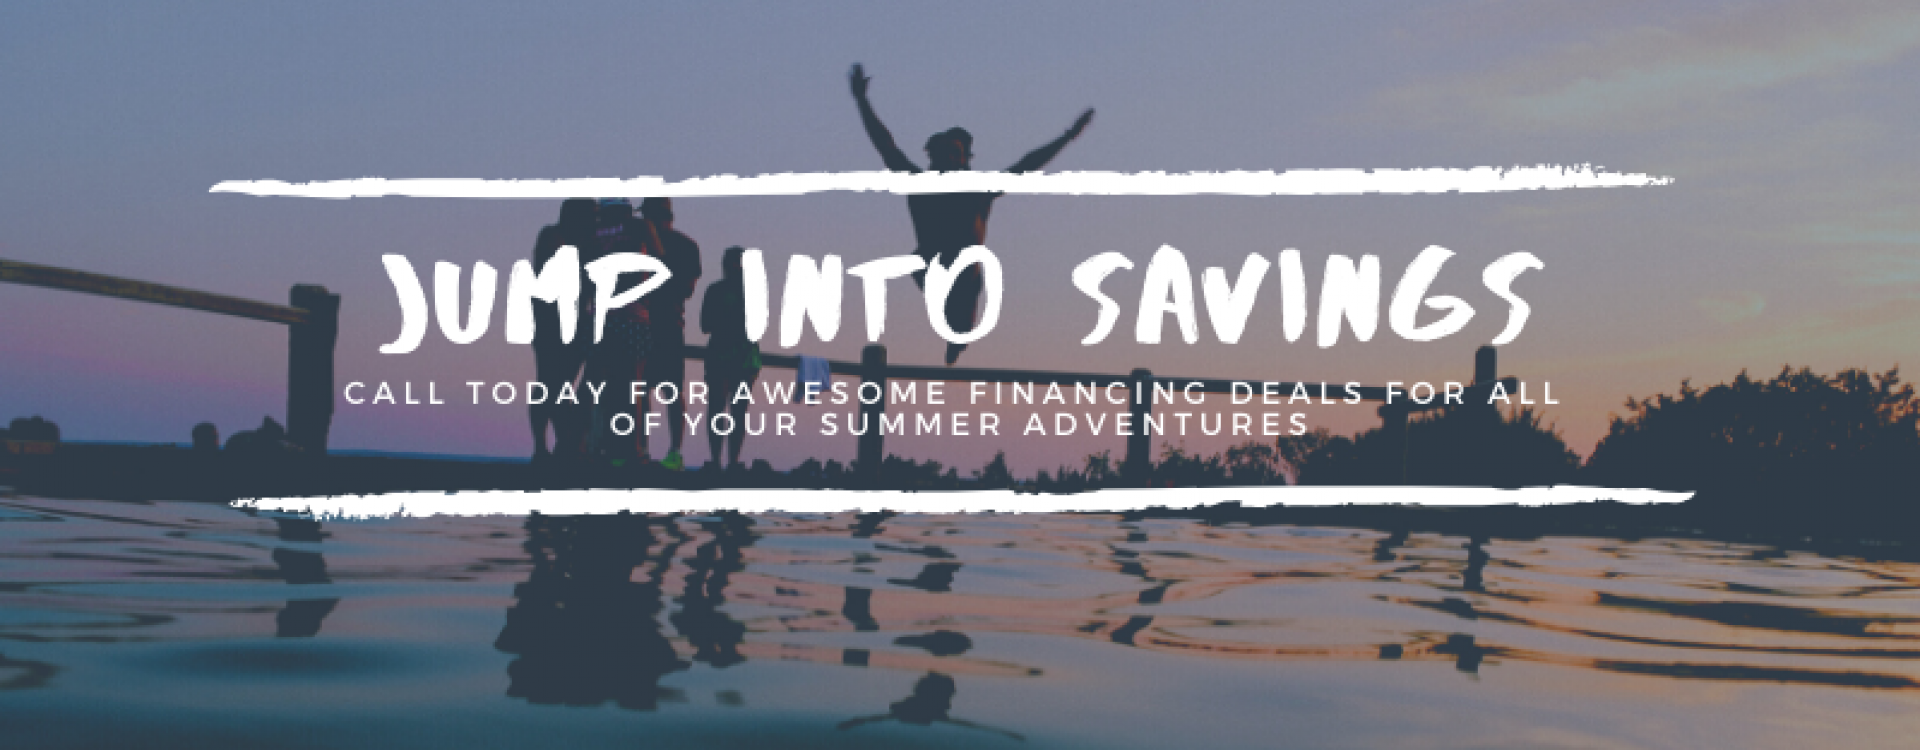 Jump into savings call today for awesome financing deals for all of your summer advendtures